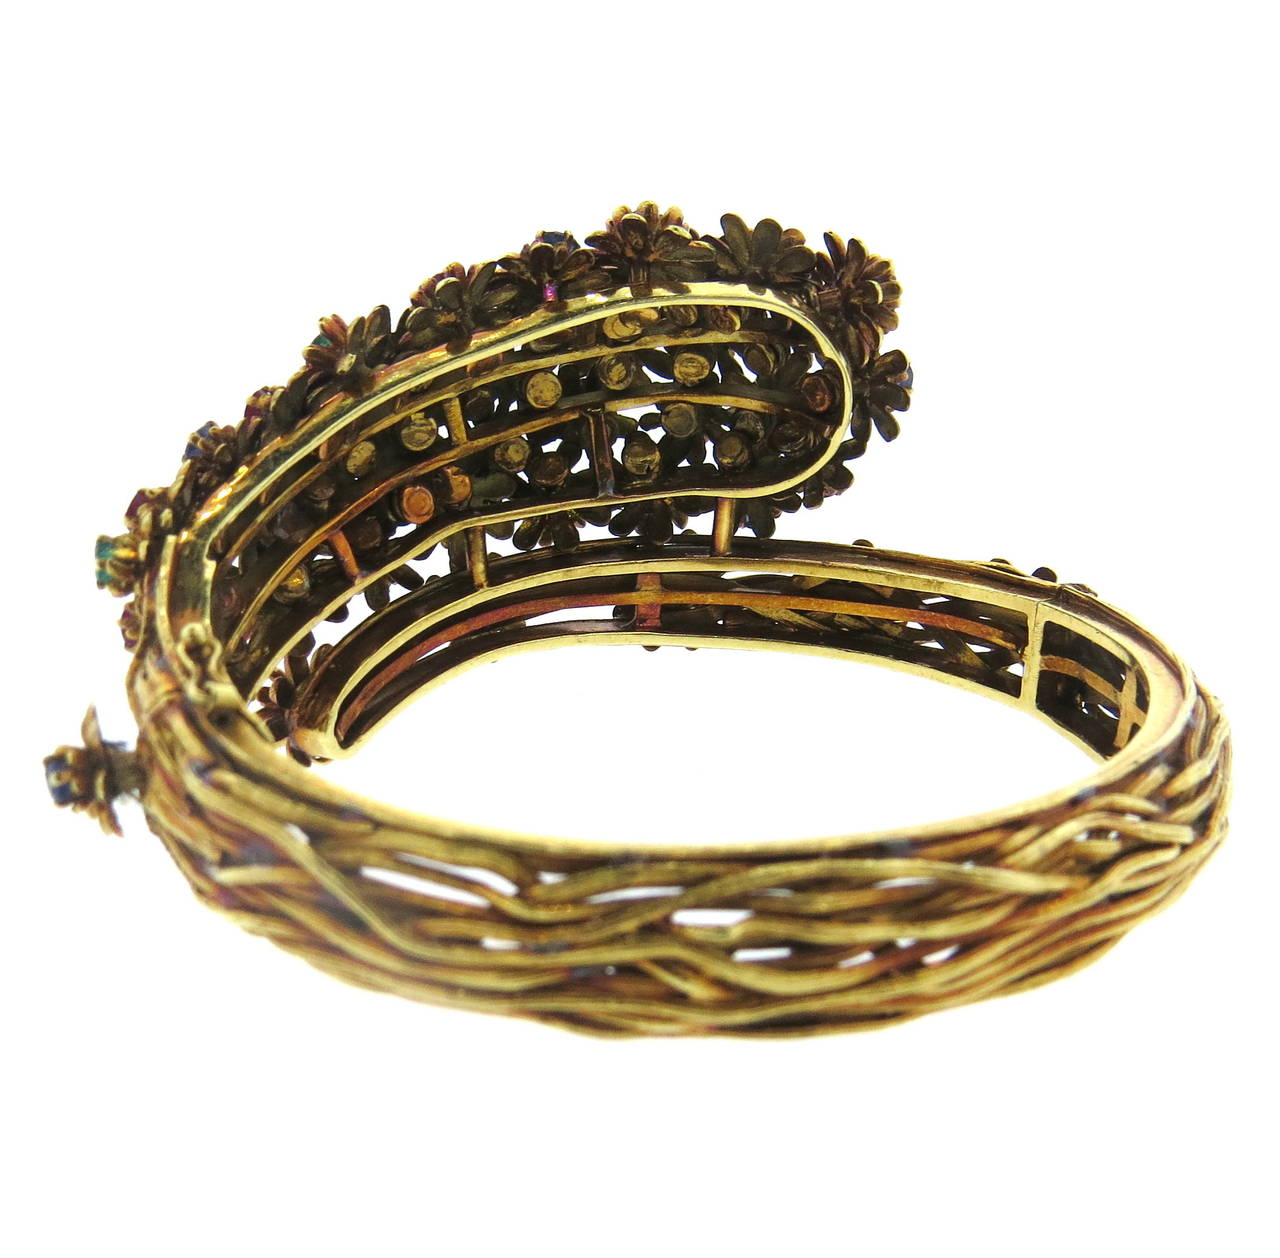 Zolotas Greece 18k gold bangle, featuring flowers, each set with diamond,sapphire,ruby or emerald in the center. Bracelet will comfortably fit  up to 7